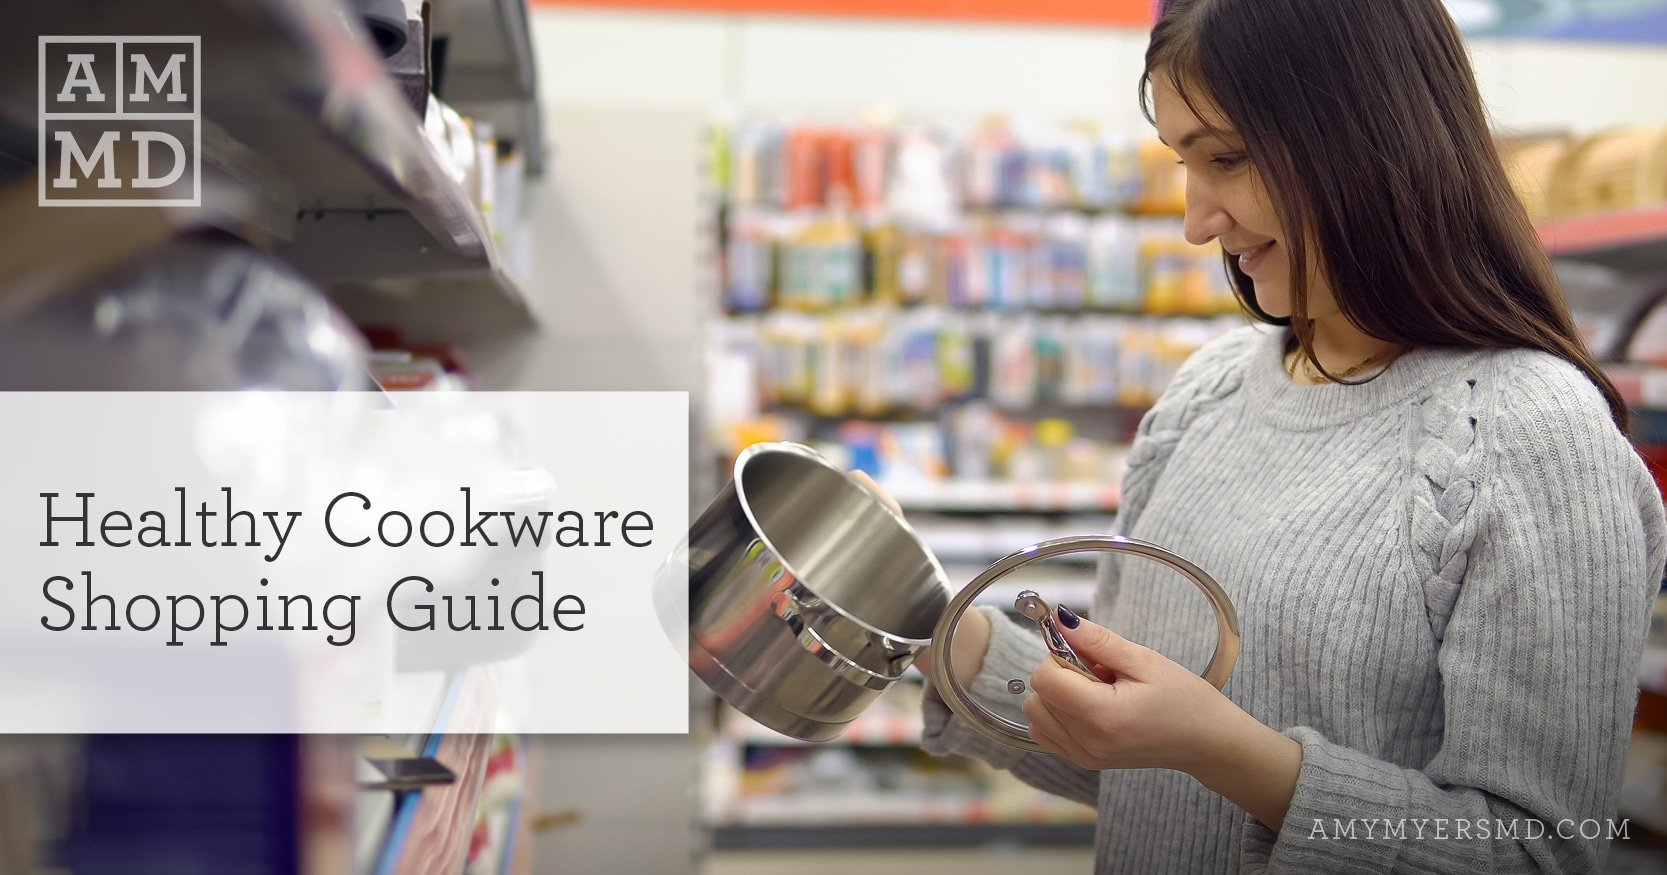 Healthy Cookware Shopping Guide - Woman Shopping for Pots and Pans - Featured Image - Amy Myers MD